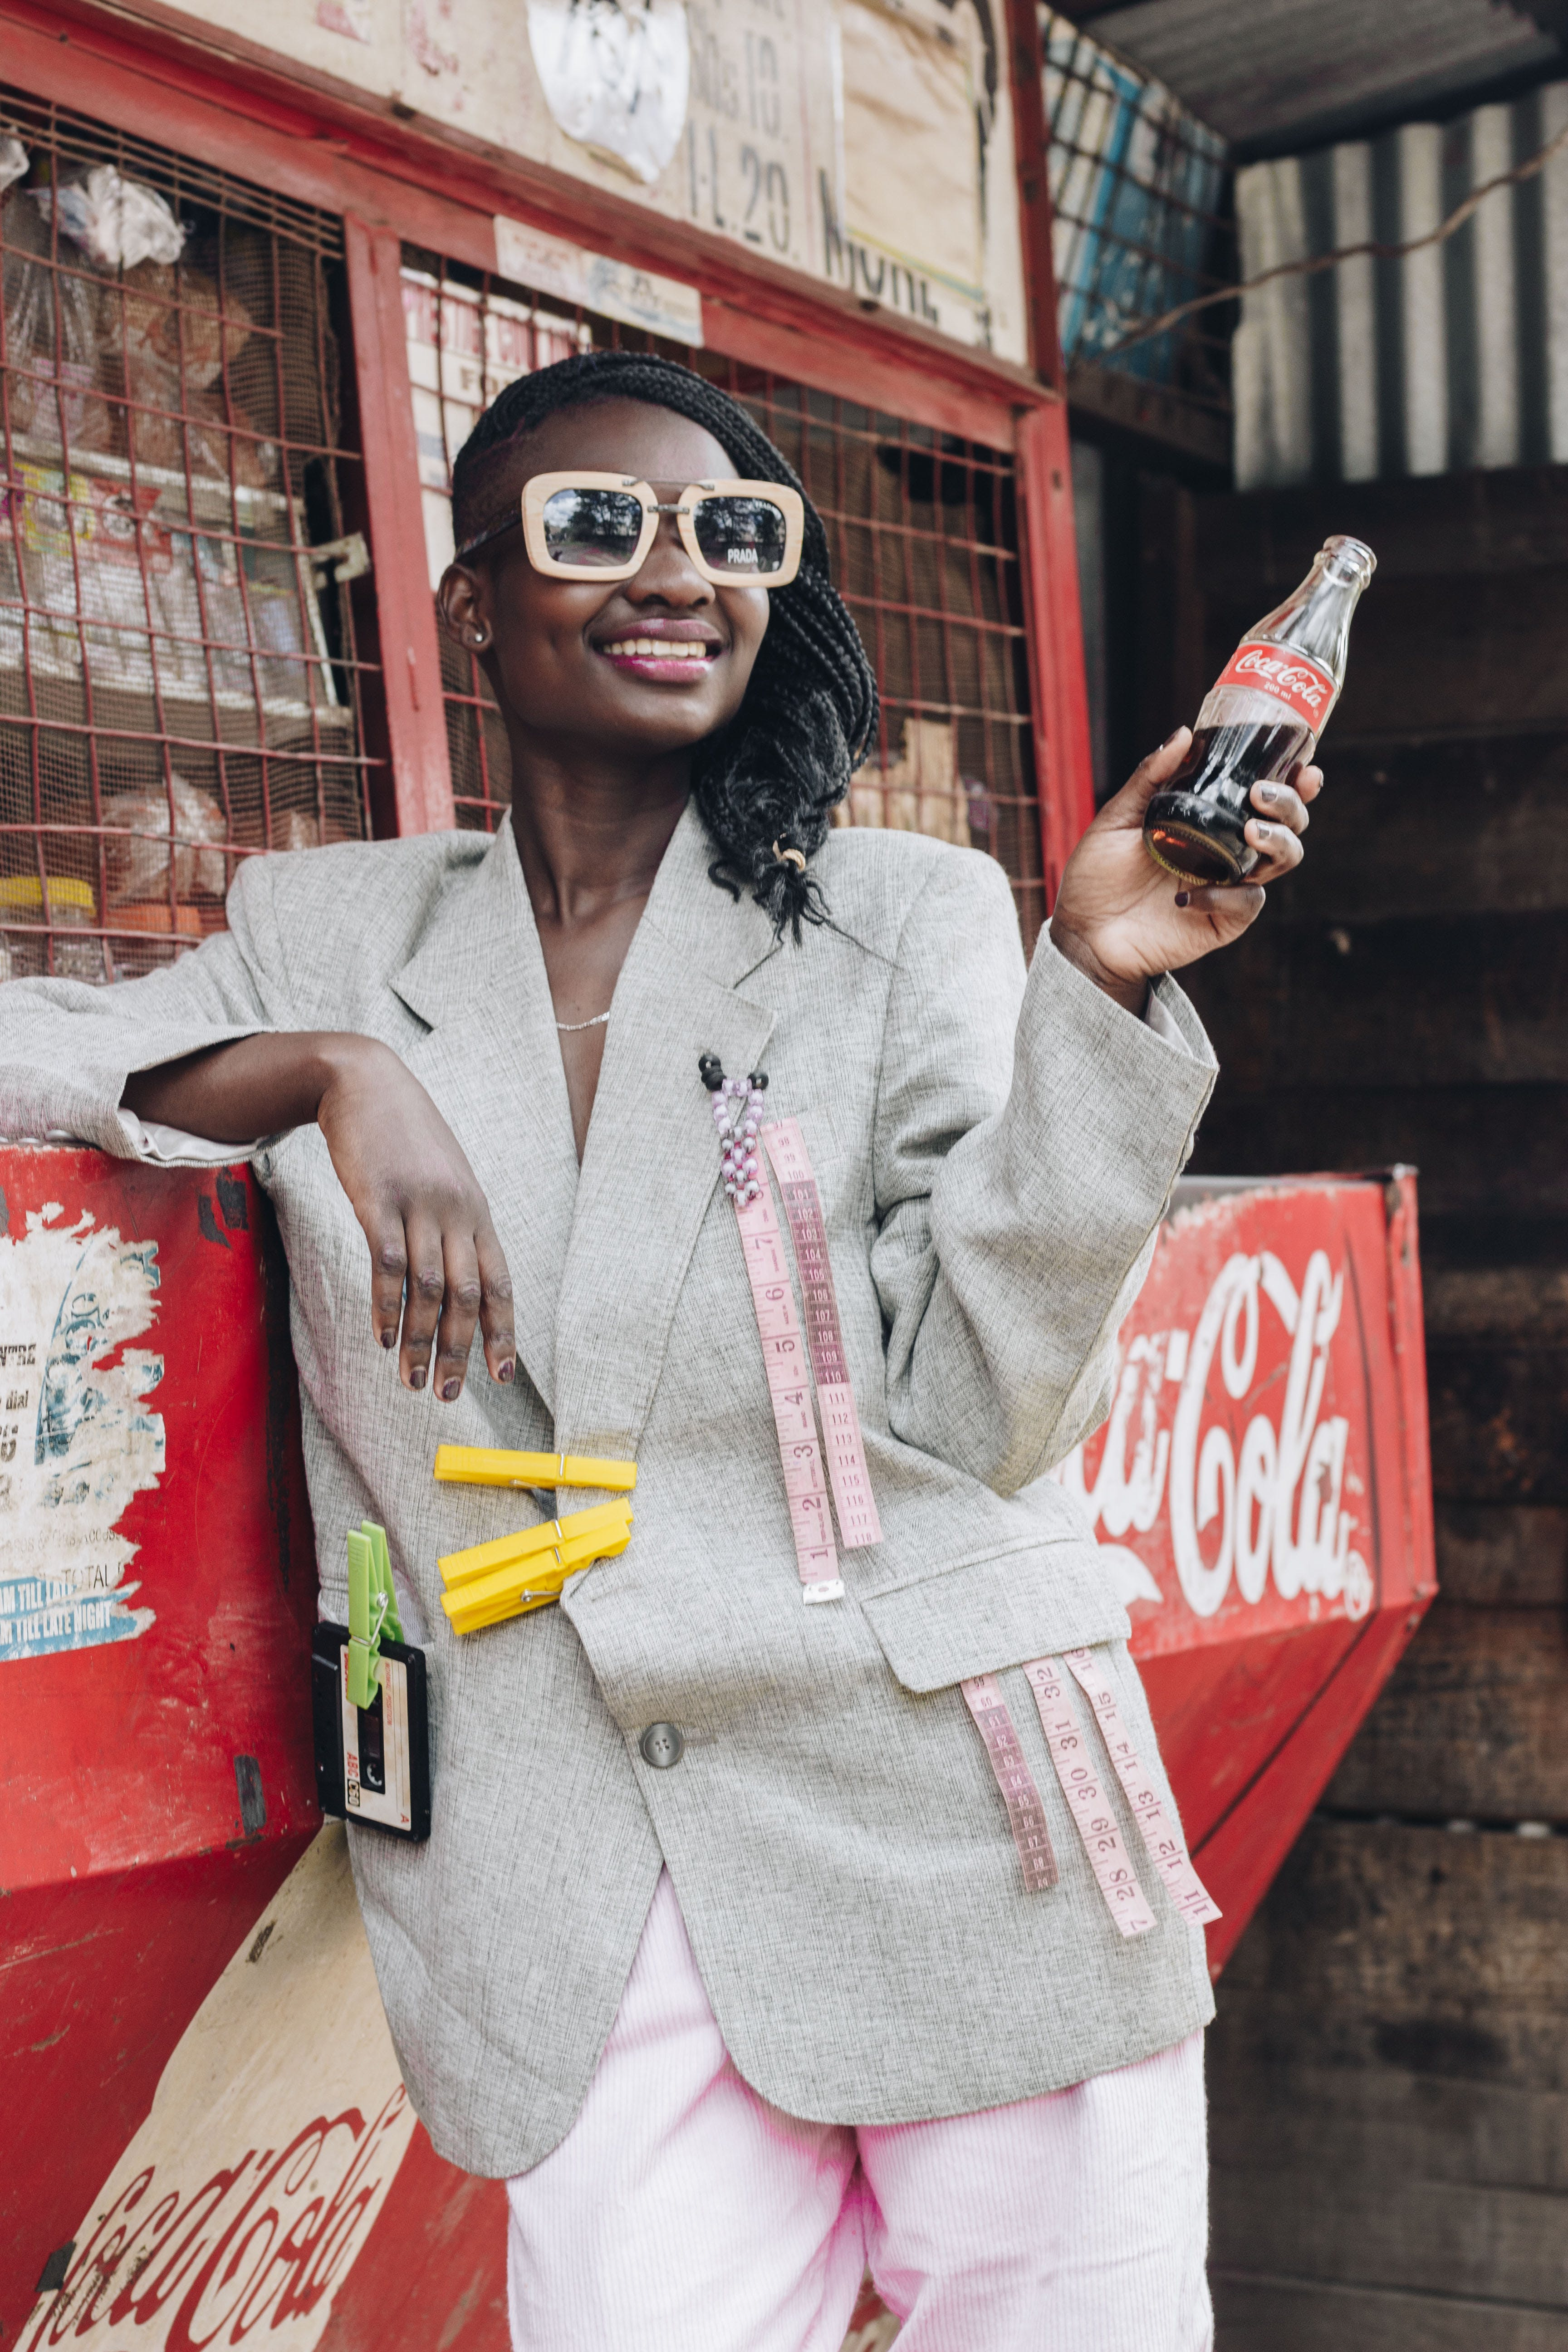 Woman Smiling While Holding Bottle of Coca-cola